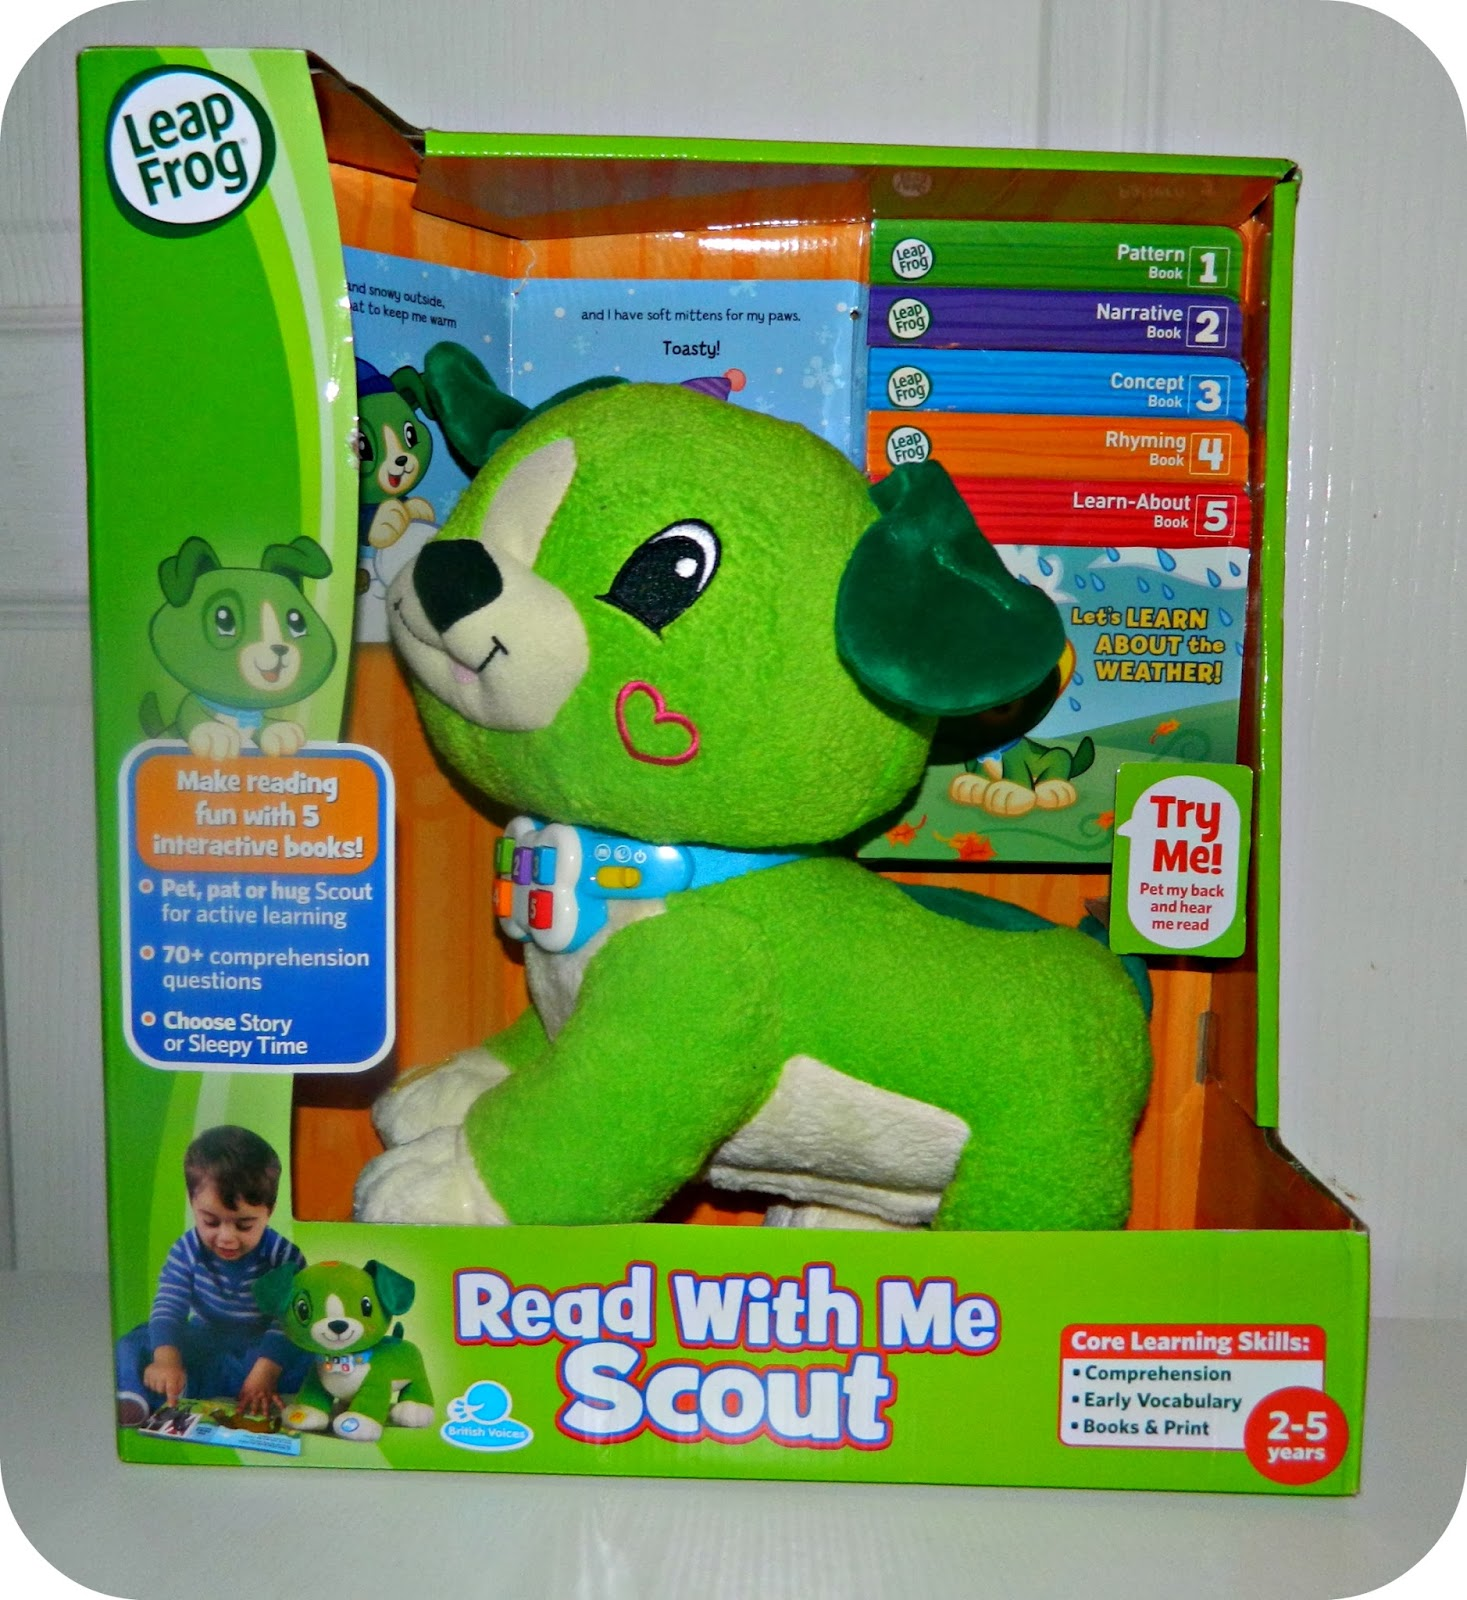 Read with Me Scout from LeapFrog